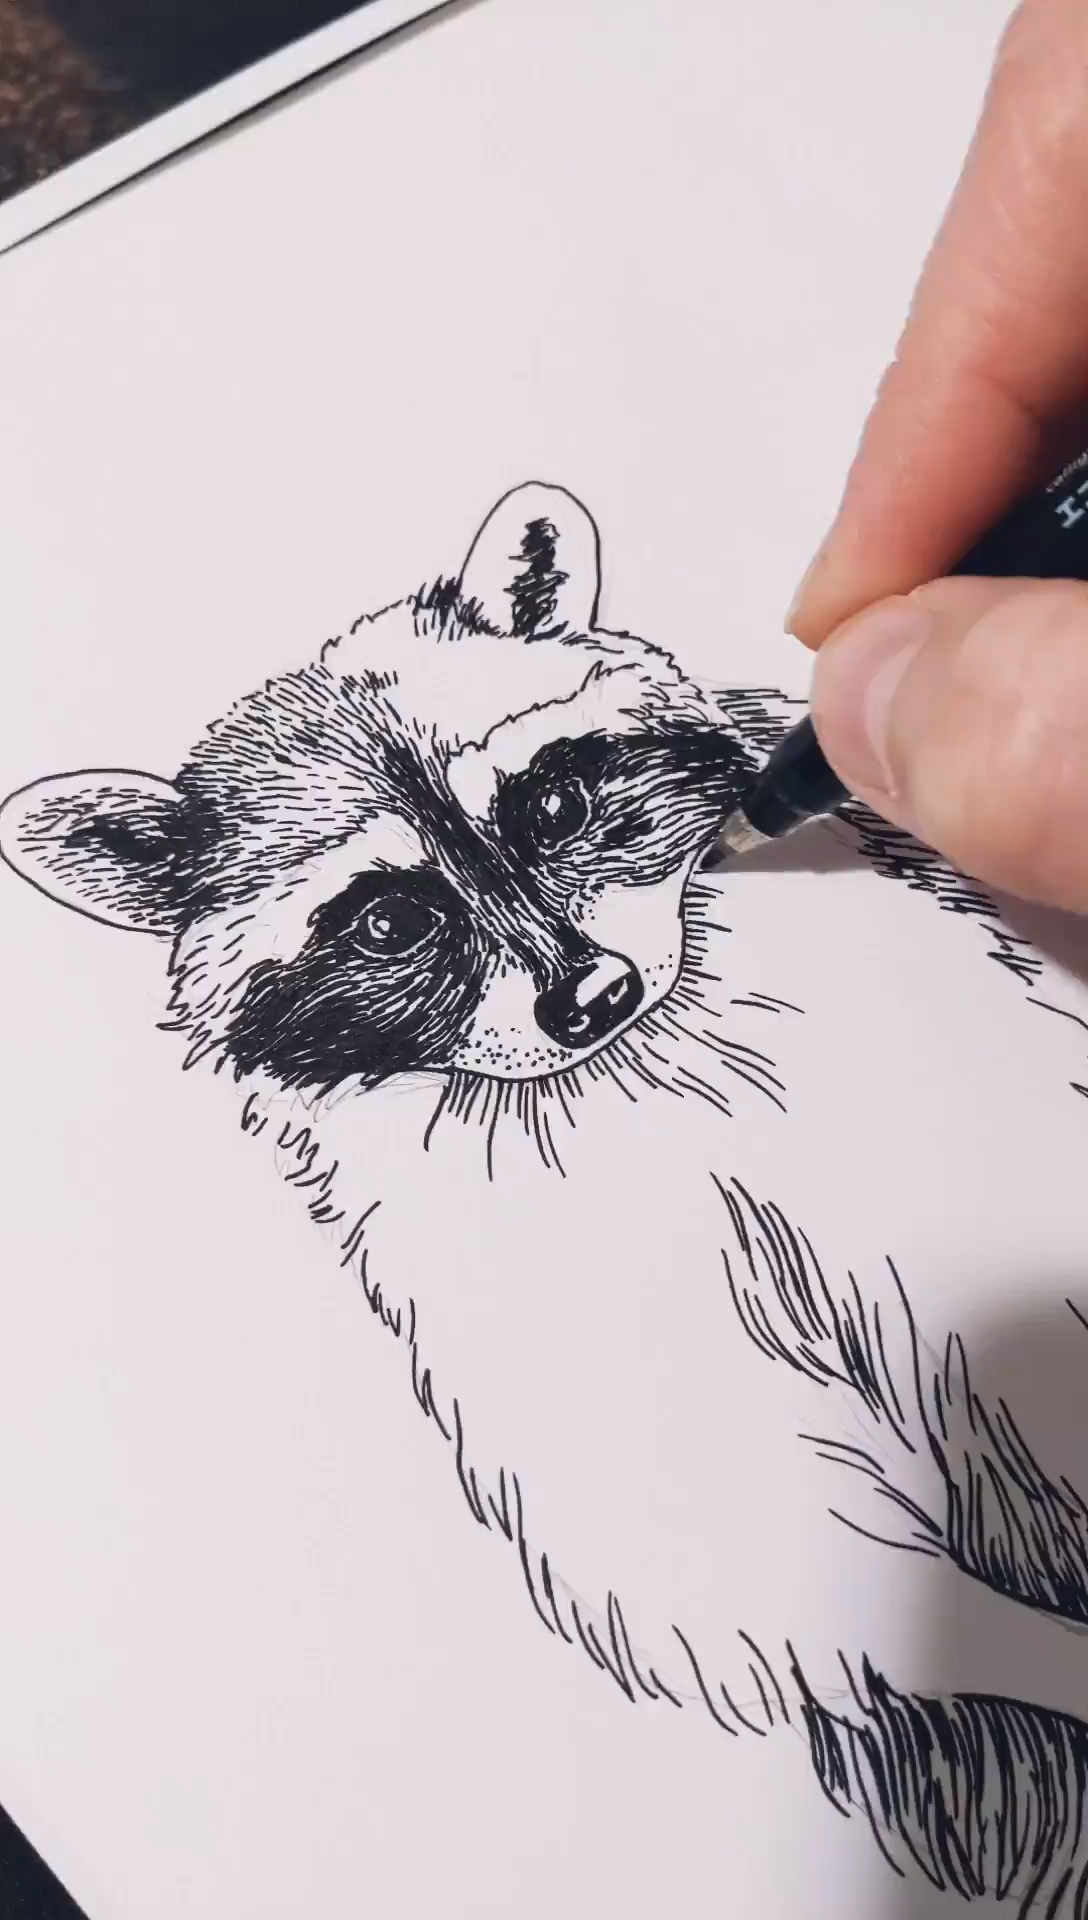 Sketching a raccoon with black ink. A little anima